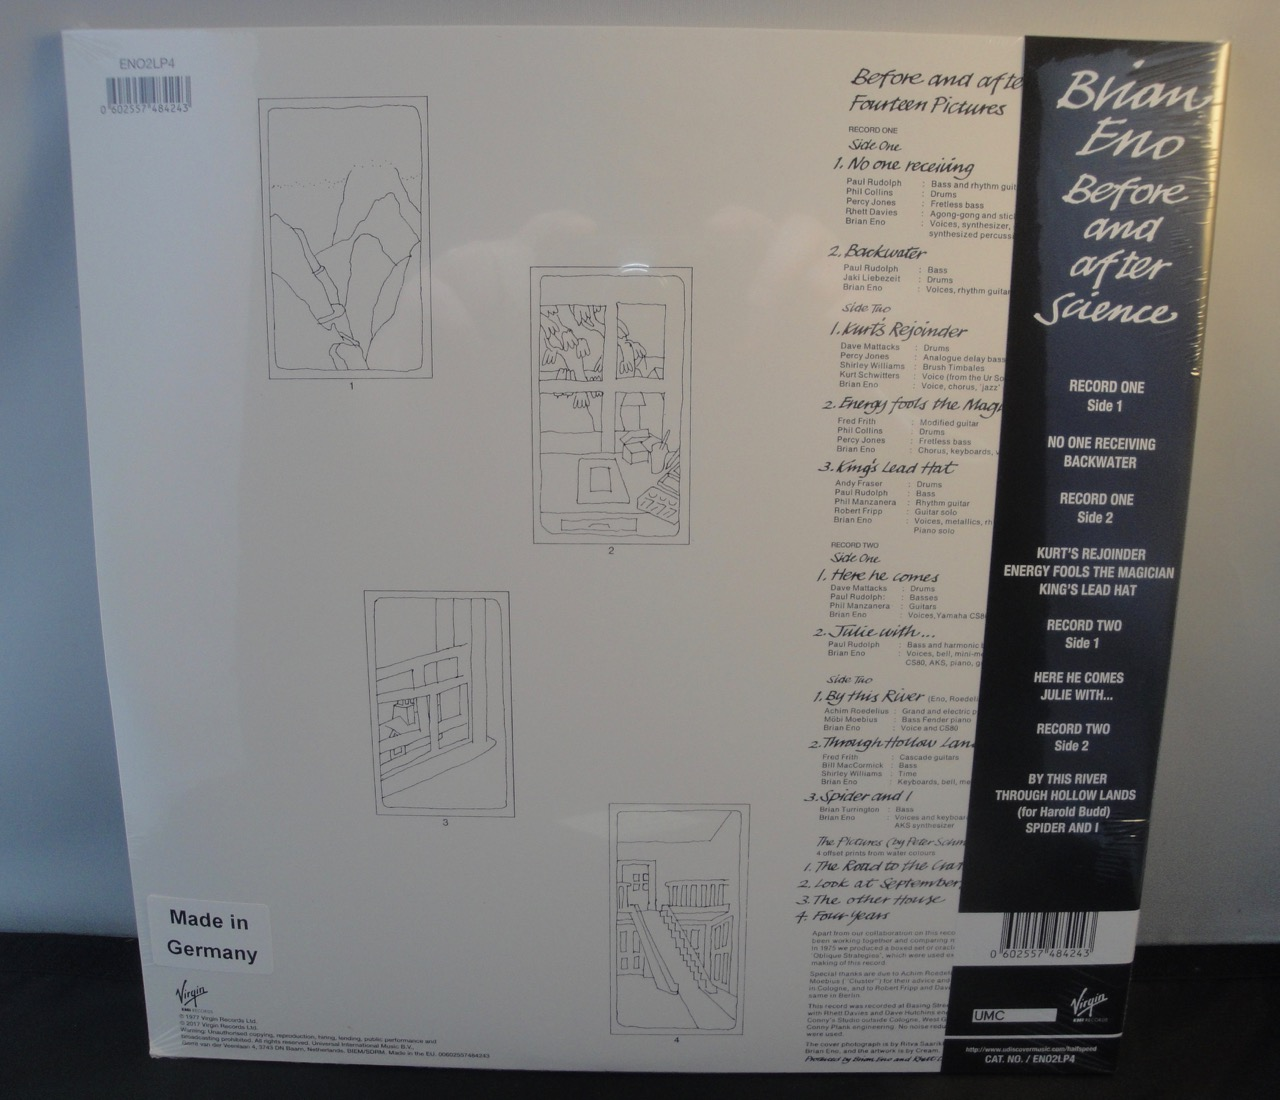 Brian Eno - Before and After Science - 2017, Ltd Ed 2XLP Reissue